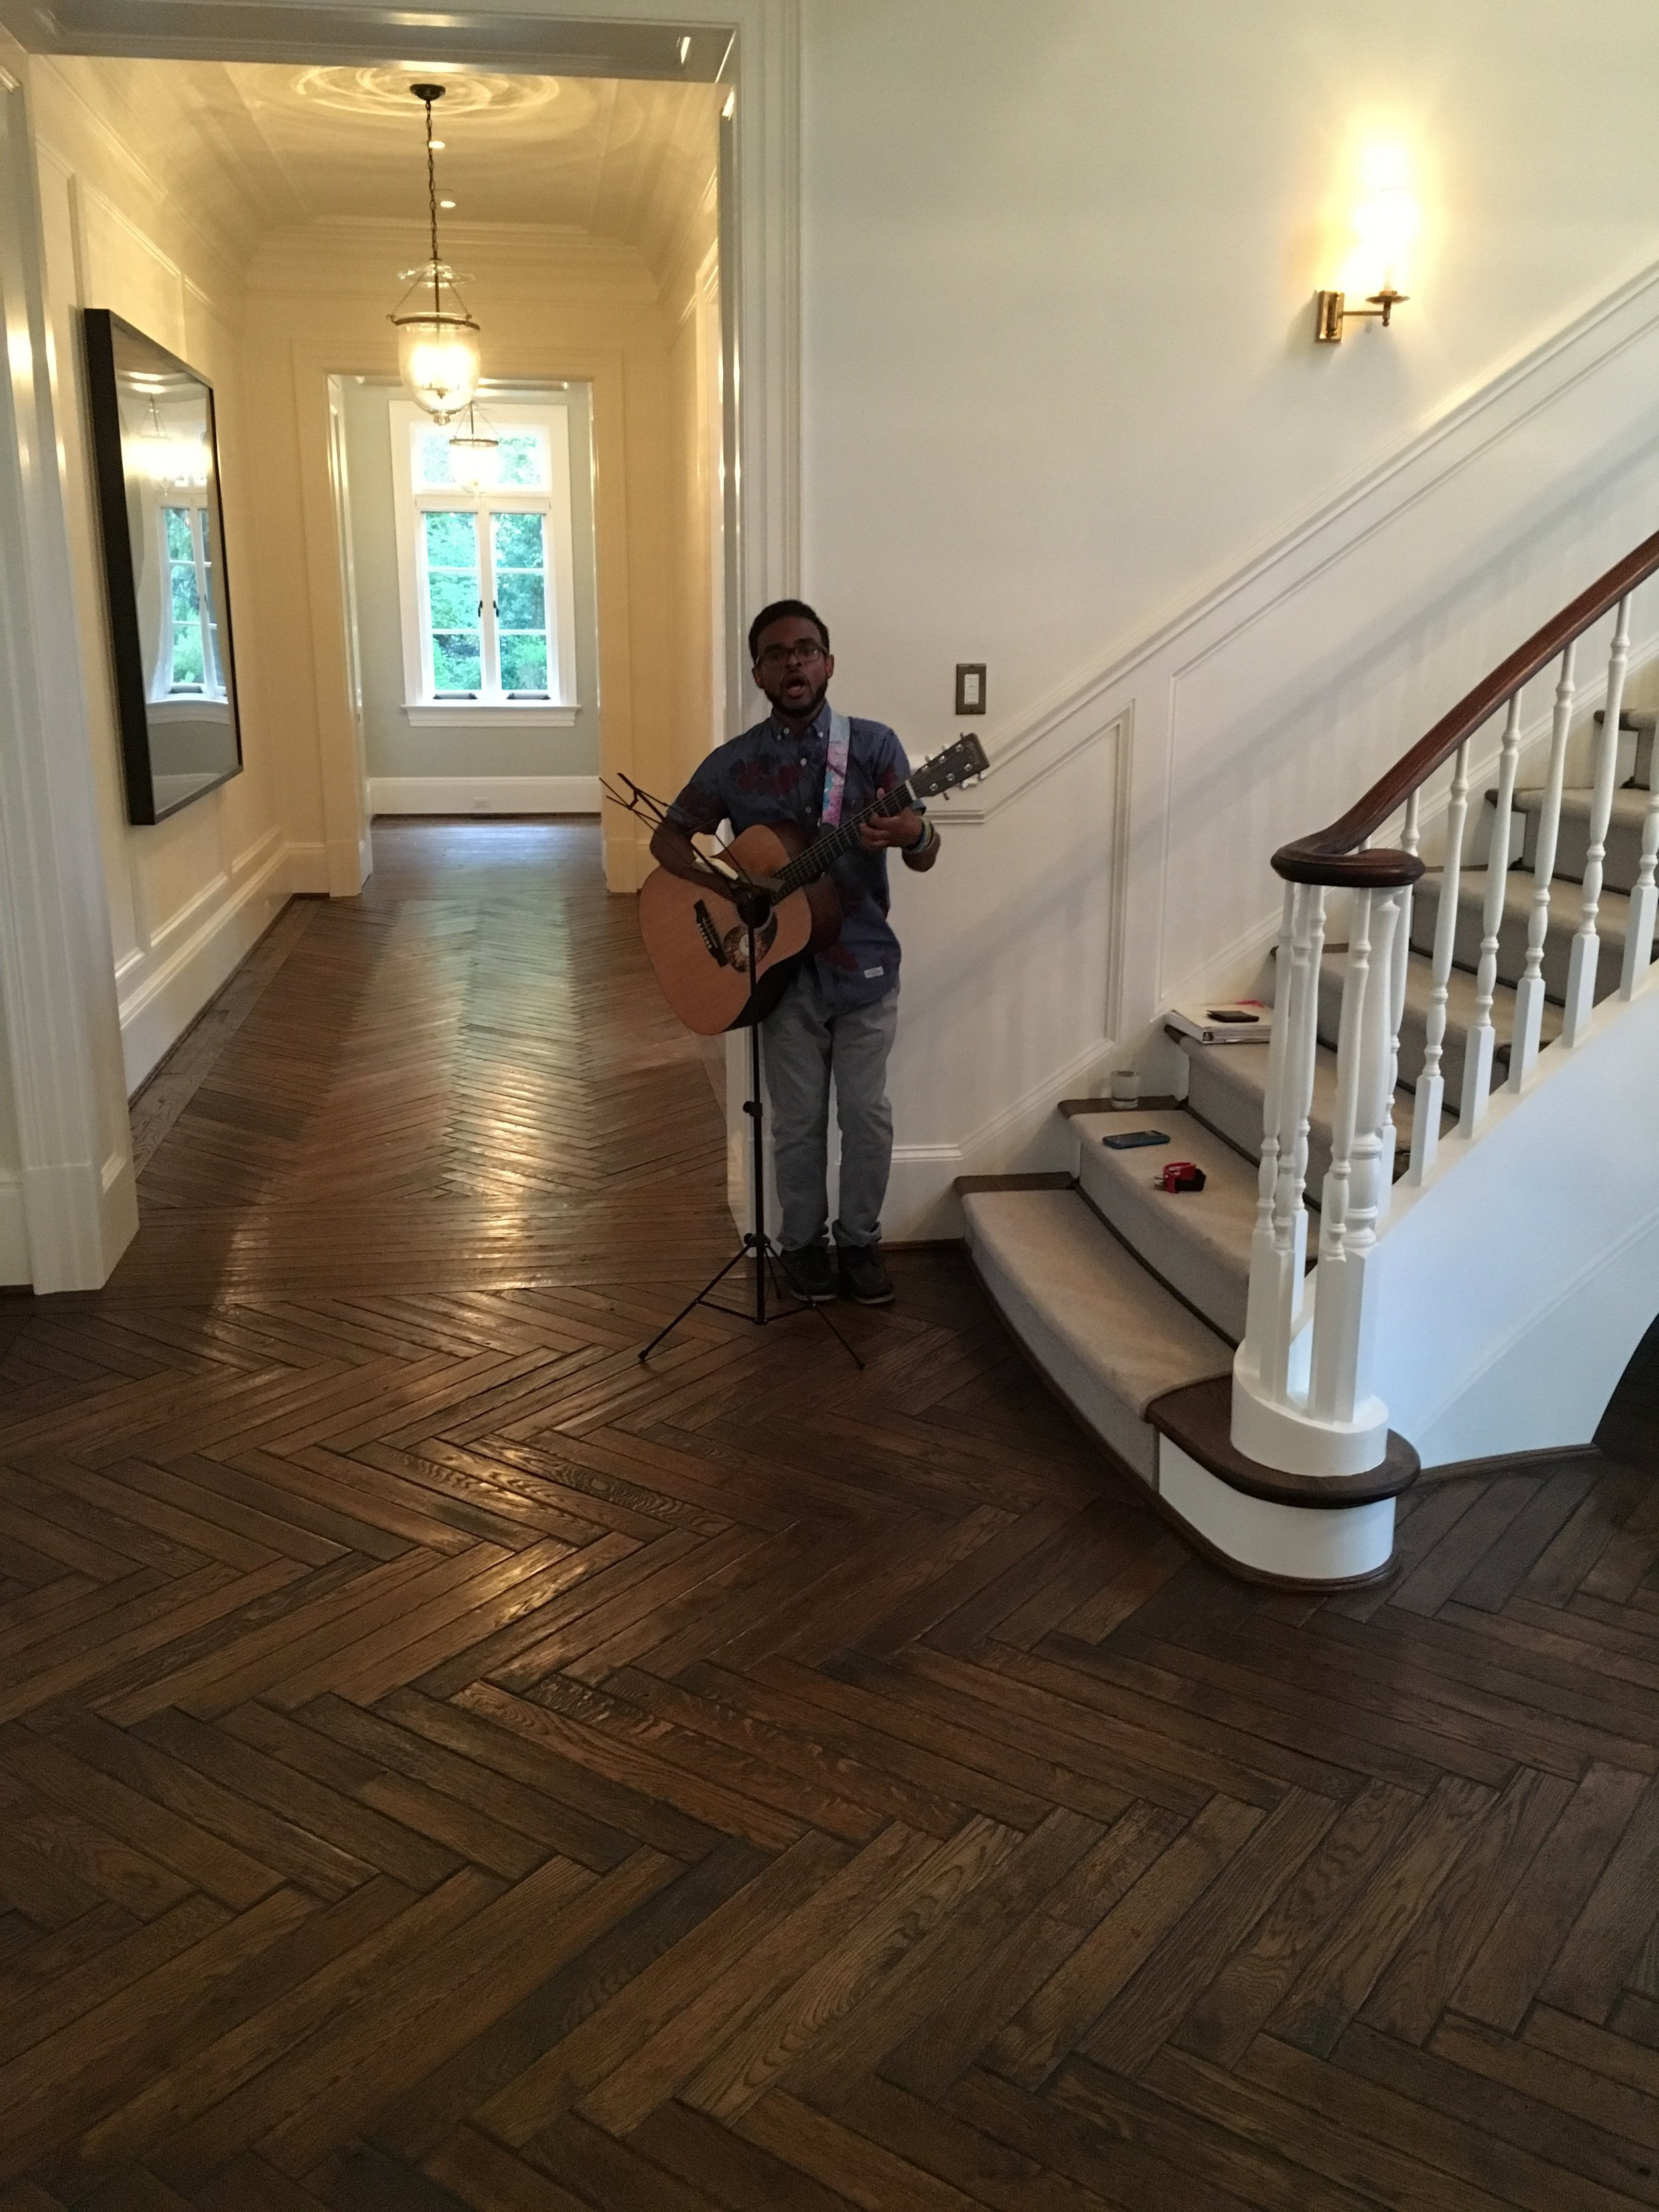 The Artist, Rosebud Ireland , playing while the ladies are coming in for the evening and during dinner.